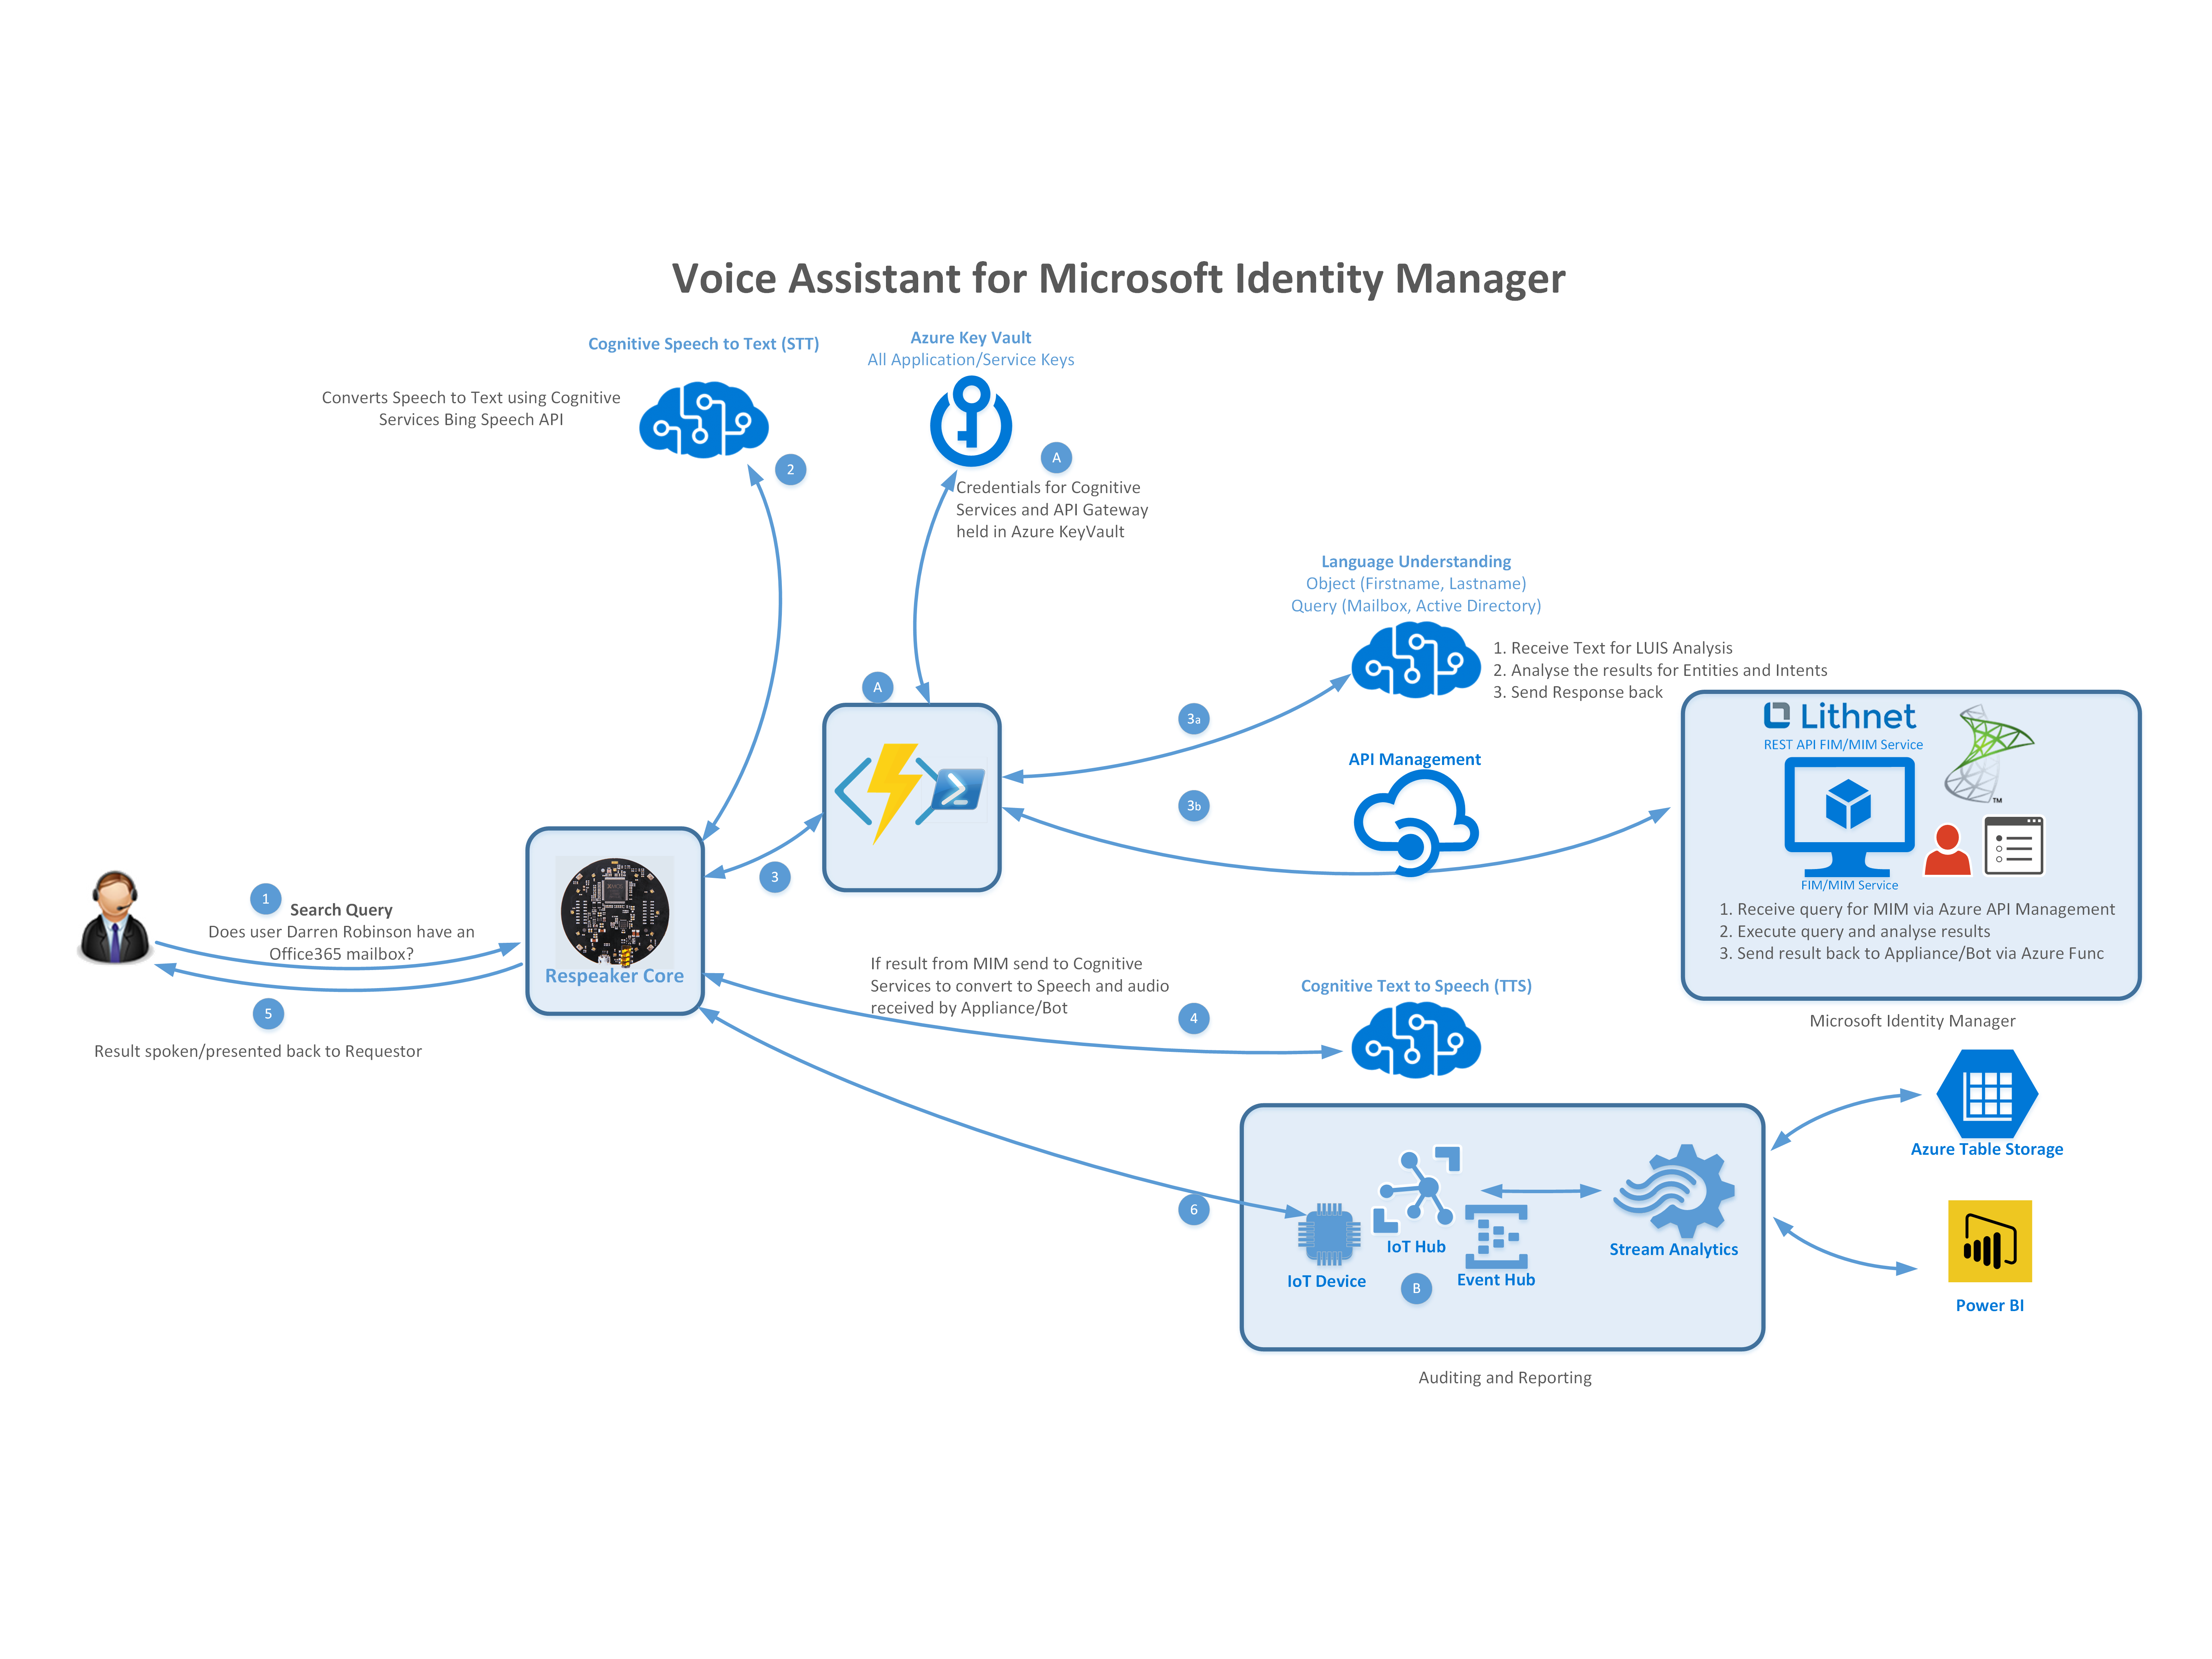 A Voice Assistant For Microsoft Identity Manager